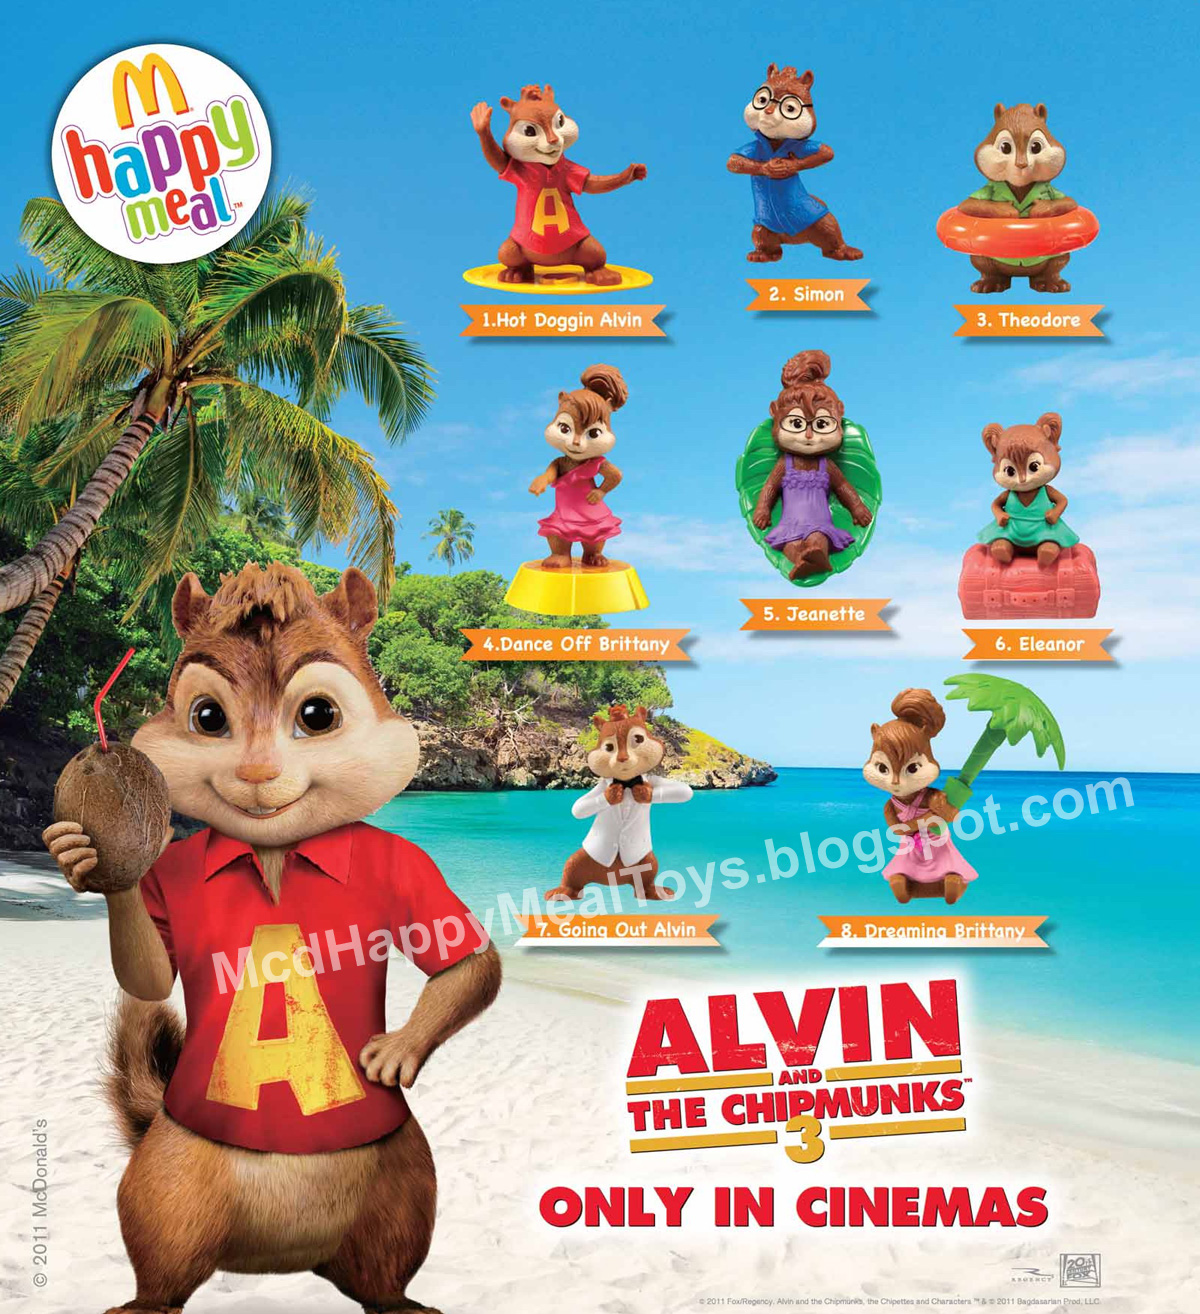 Alvin And The Chipmunks 3 Images alvin and the chipmunks 3 toys – happy meal toys